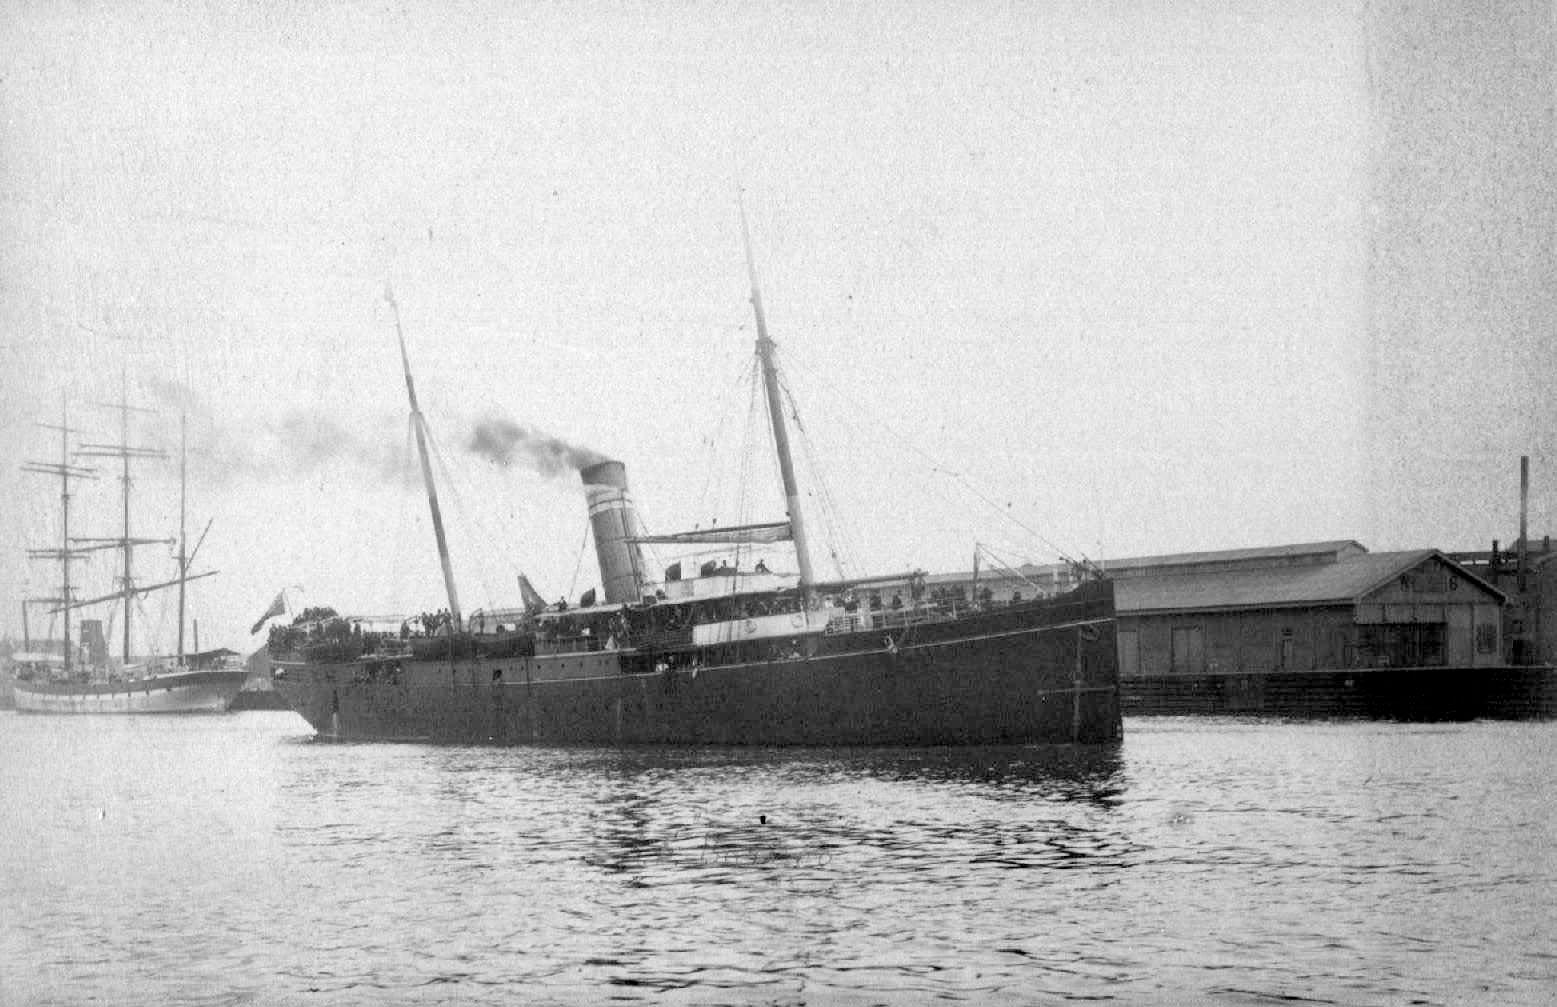 """General cargo vessel """"S.S. Barcoo"""", built in 1885 at Dumbarton by W Denny & Bros for Australasian United Steam Navigation Co Ltd.  She served on the Australian coast until she was hulked in 1911. Official Number:  91876 Dimensions:  length 250', breadth"""